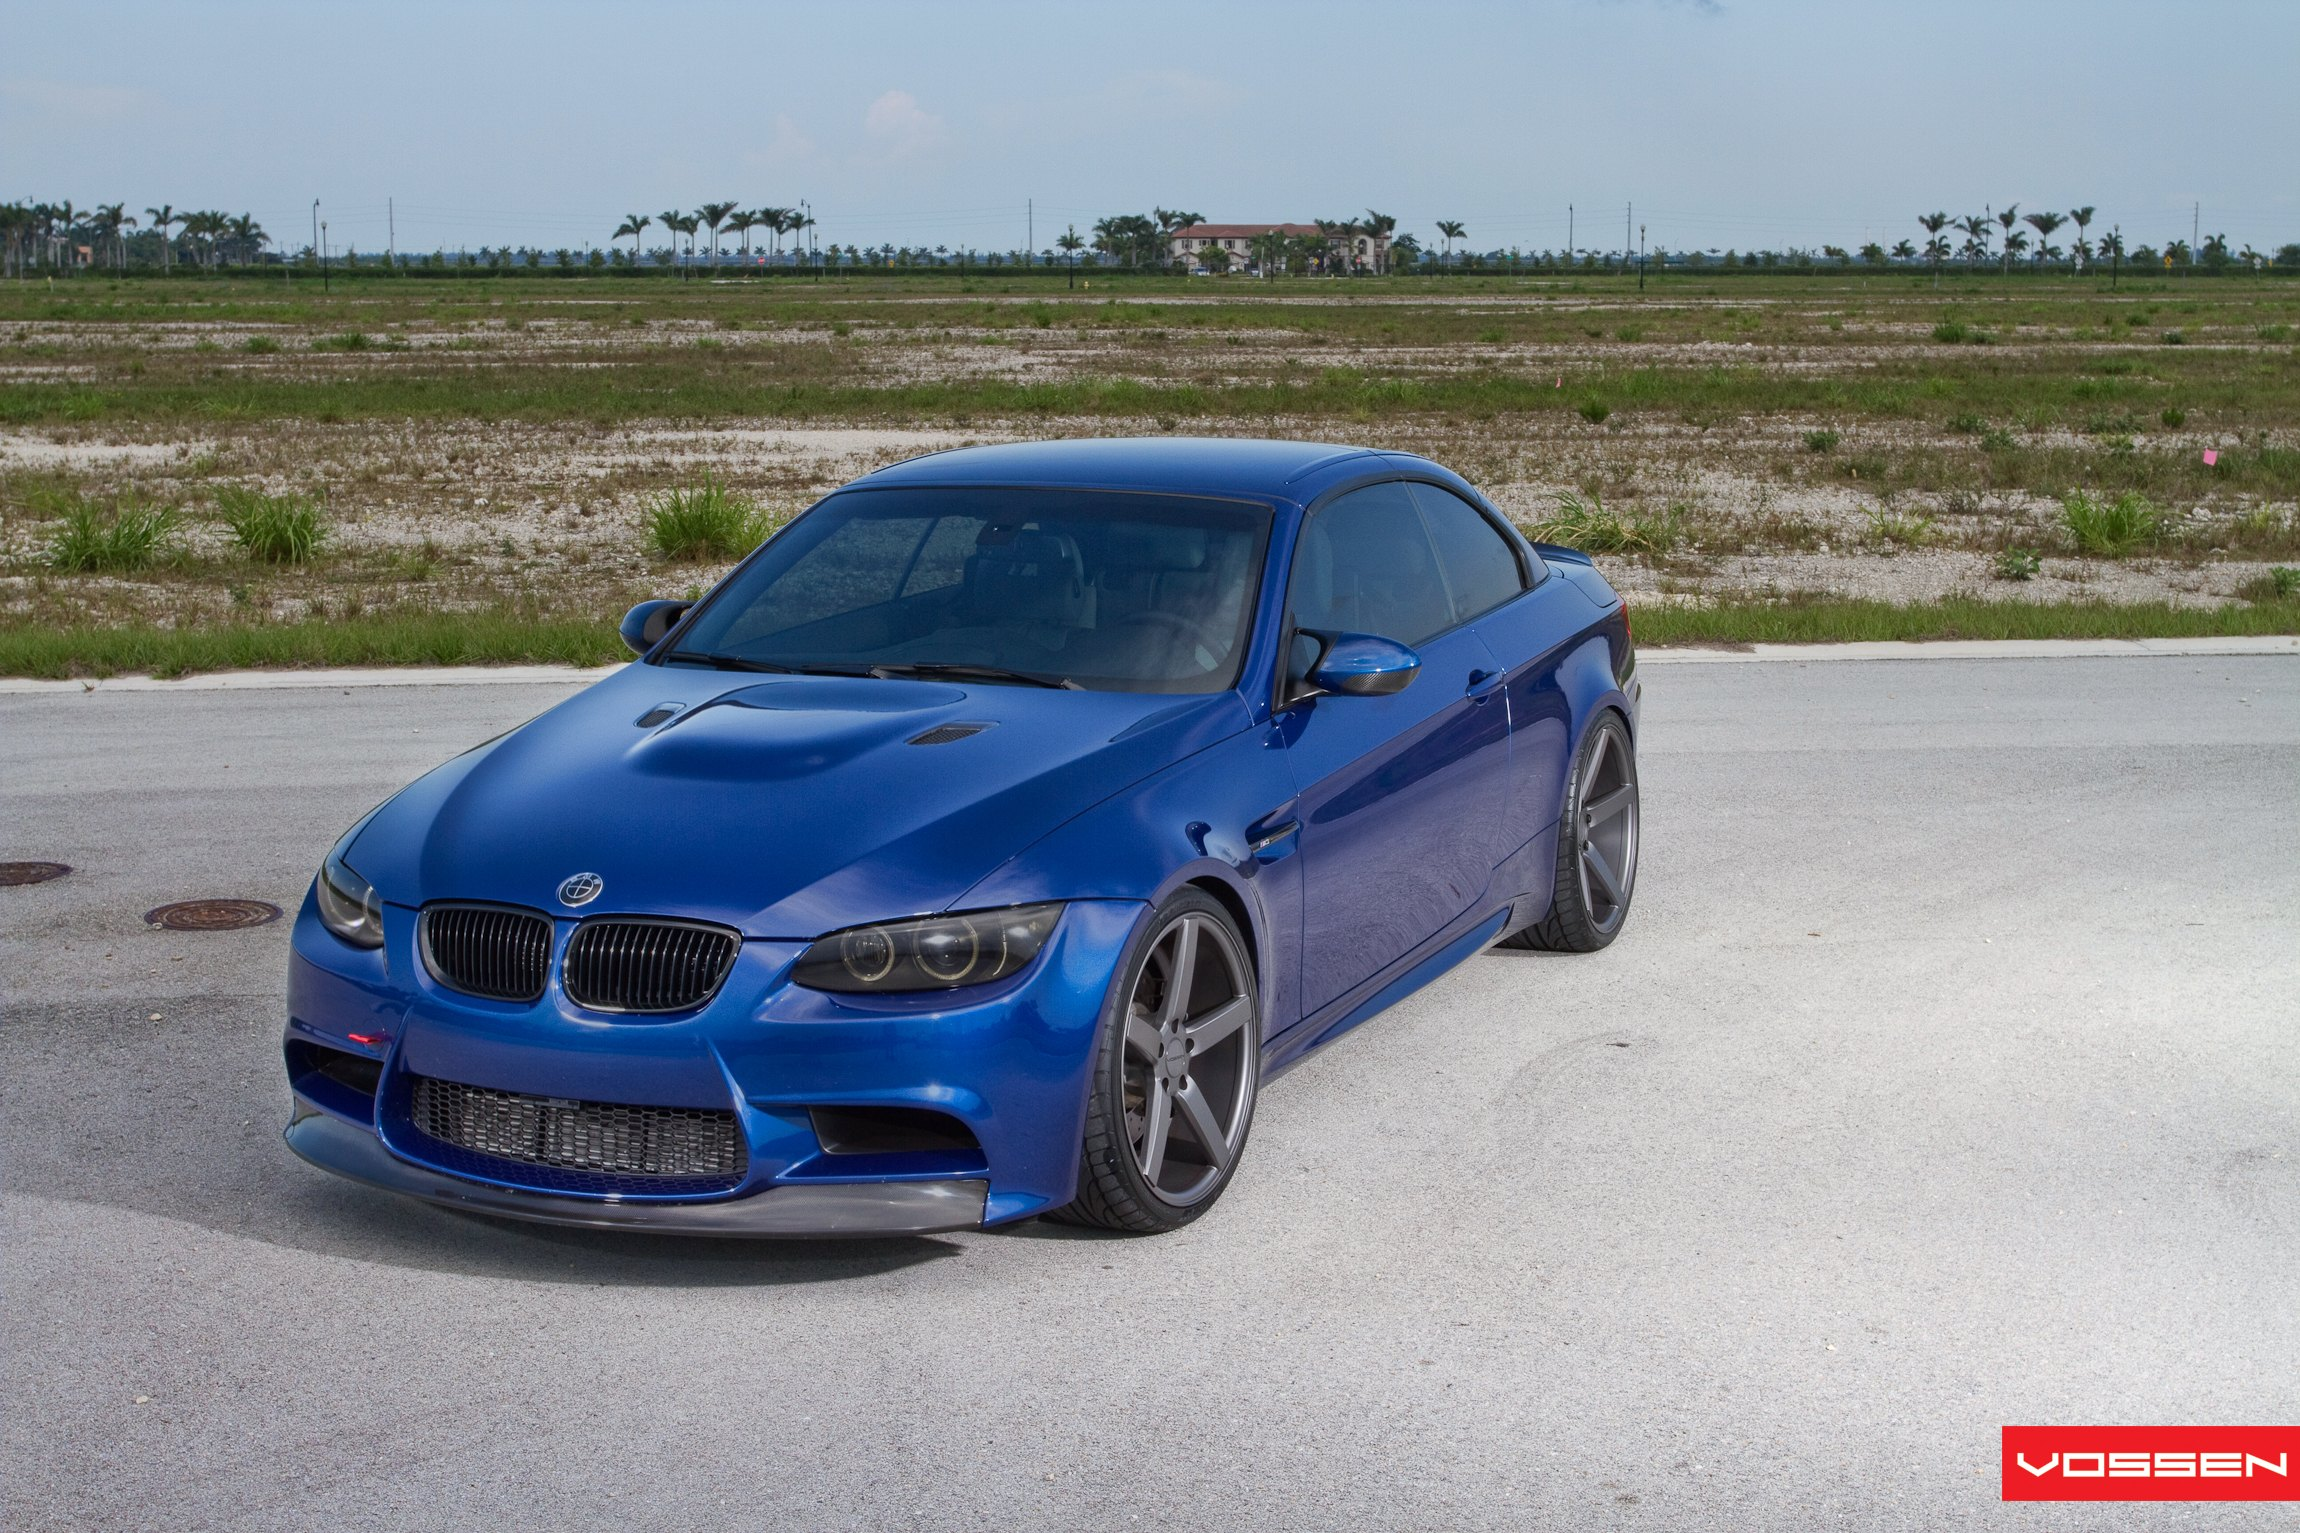 Custom Hood with Air Vents on Blue Convertible BMW 3-Series - Photo by Vossen